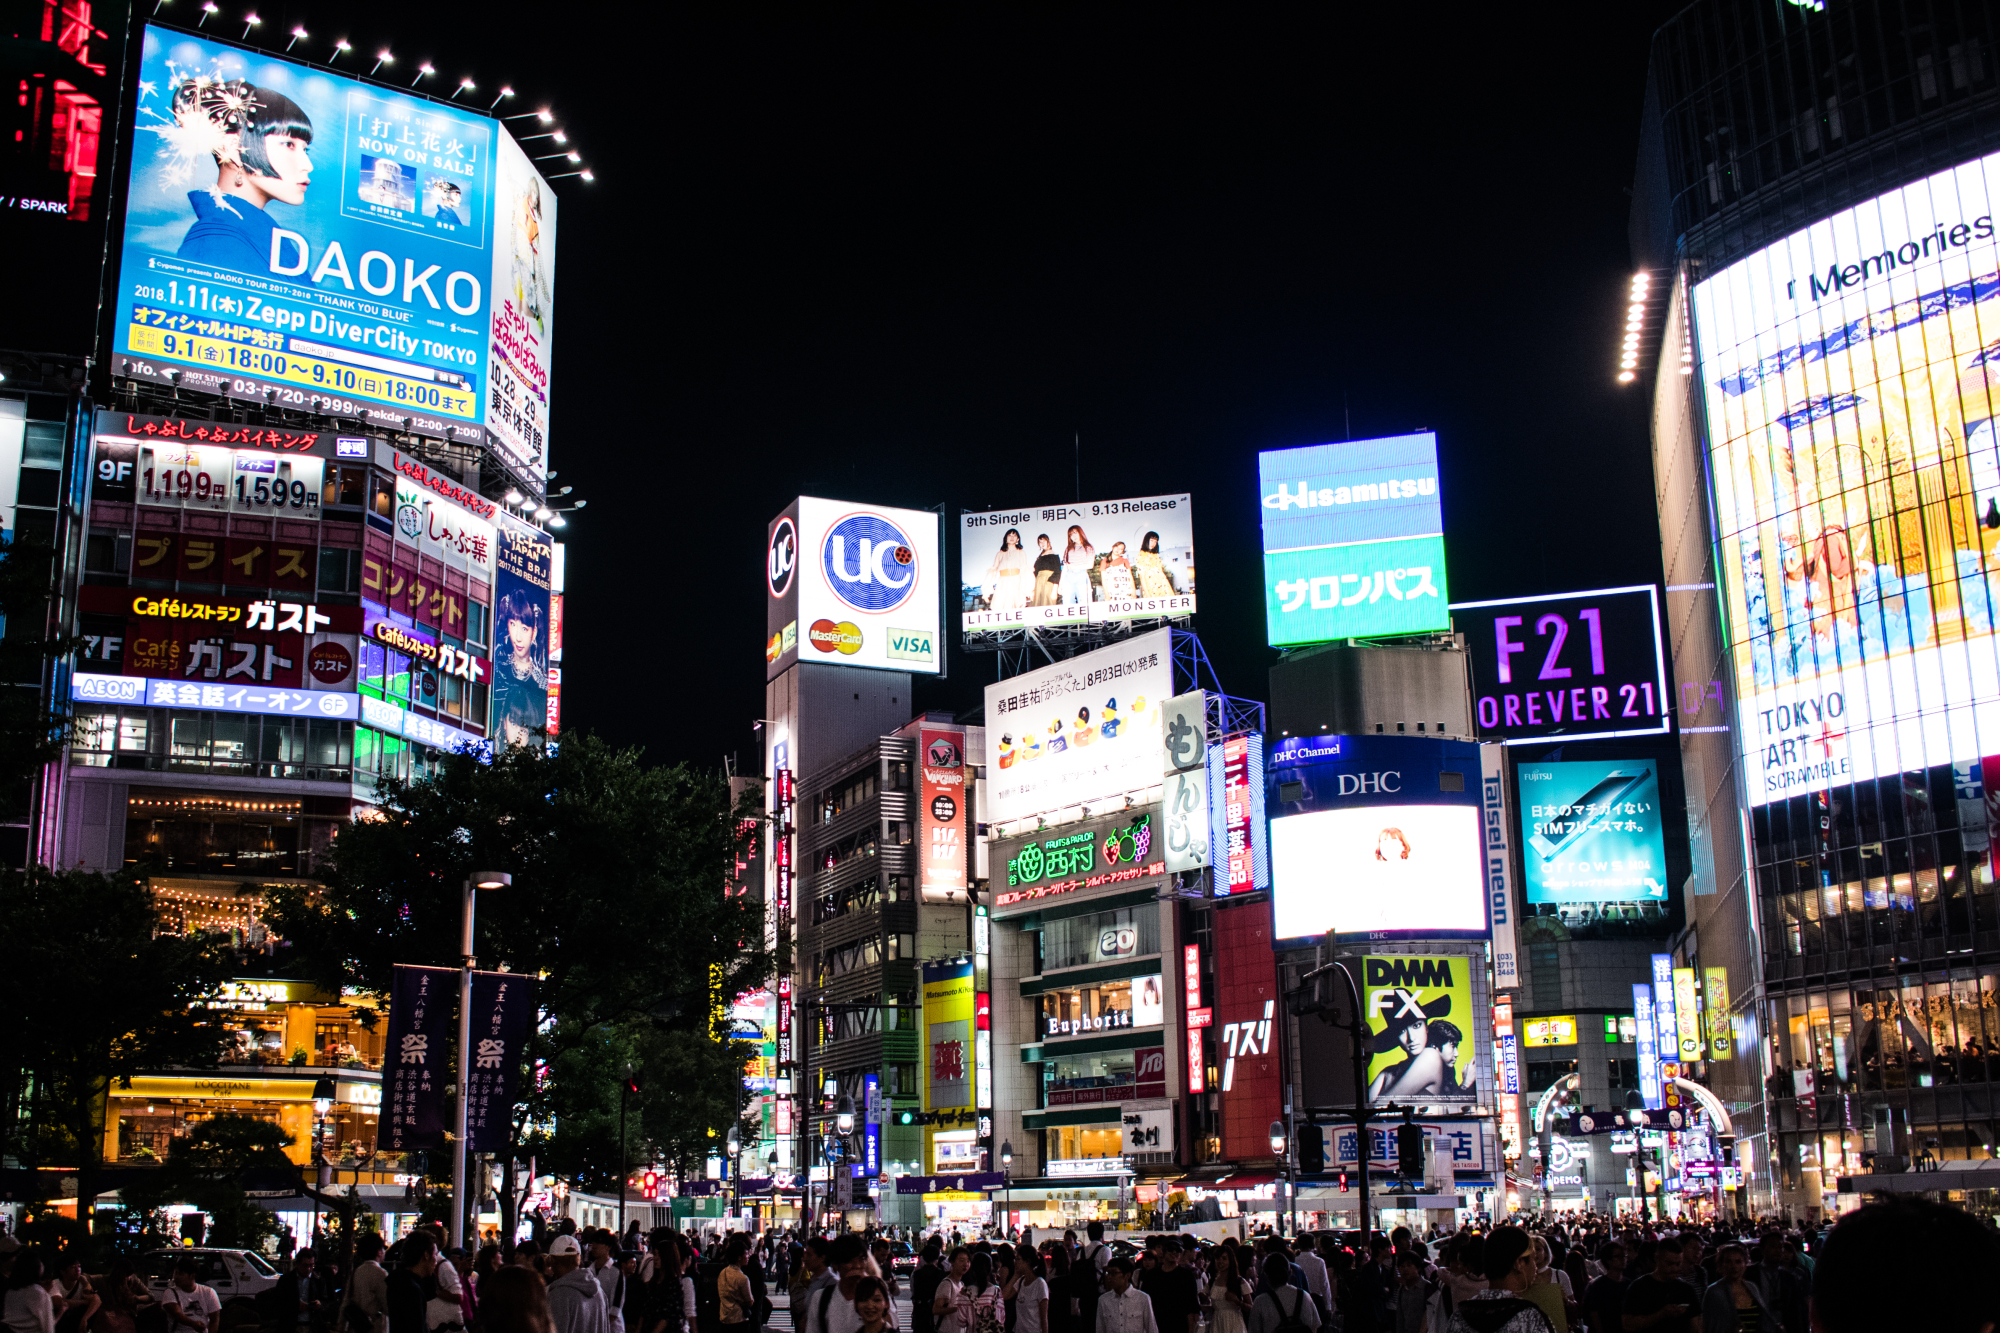 Prominent placement: A billboard promoting emerging artist Daoko (top left) overlooks a busy Shibuya Crossing in early September. | NICHOLAS SEAGREAVES